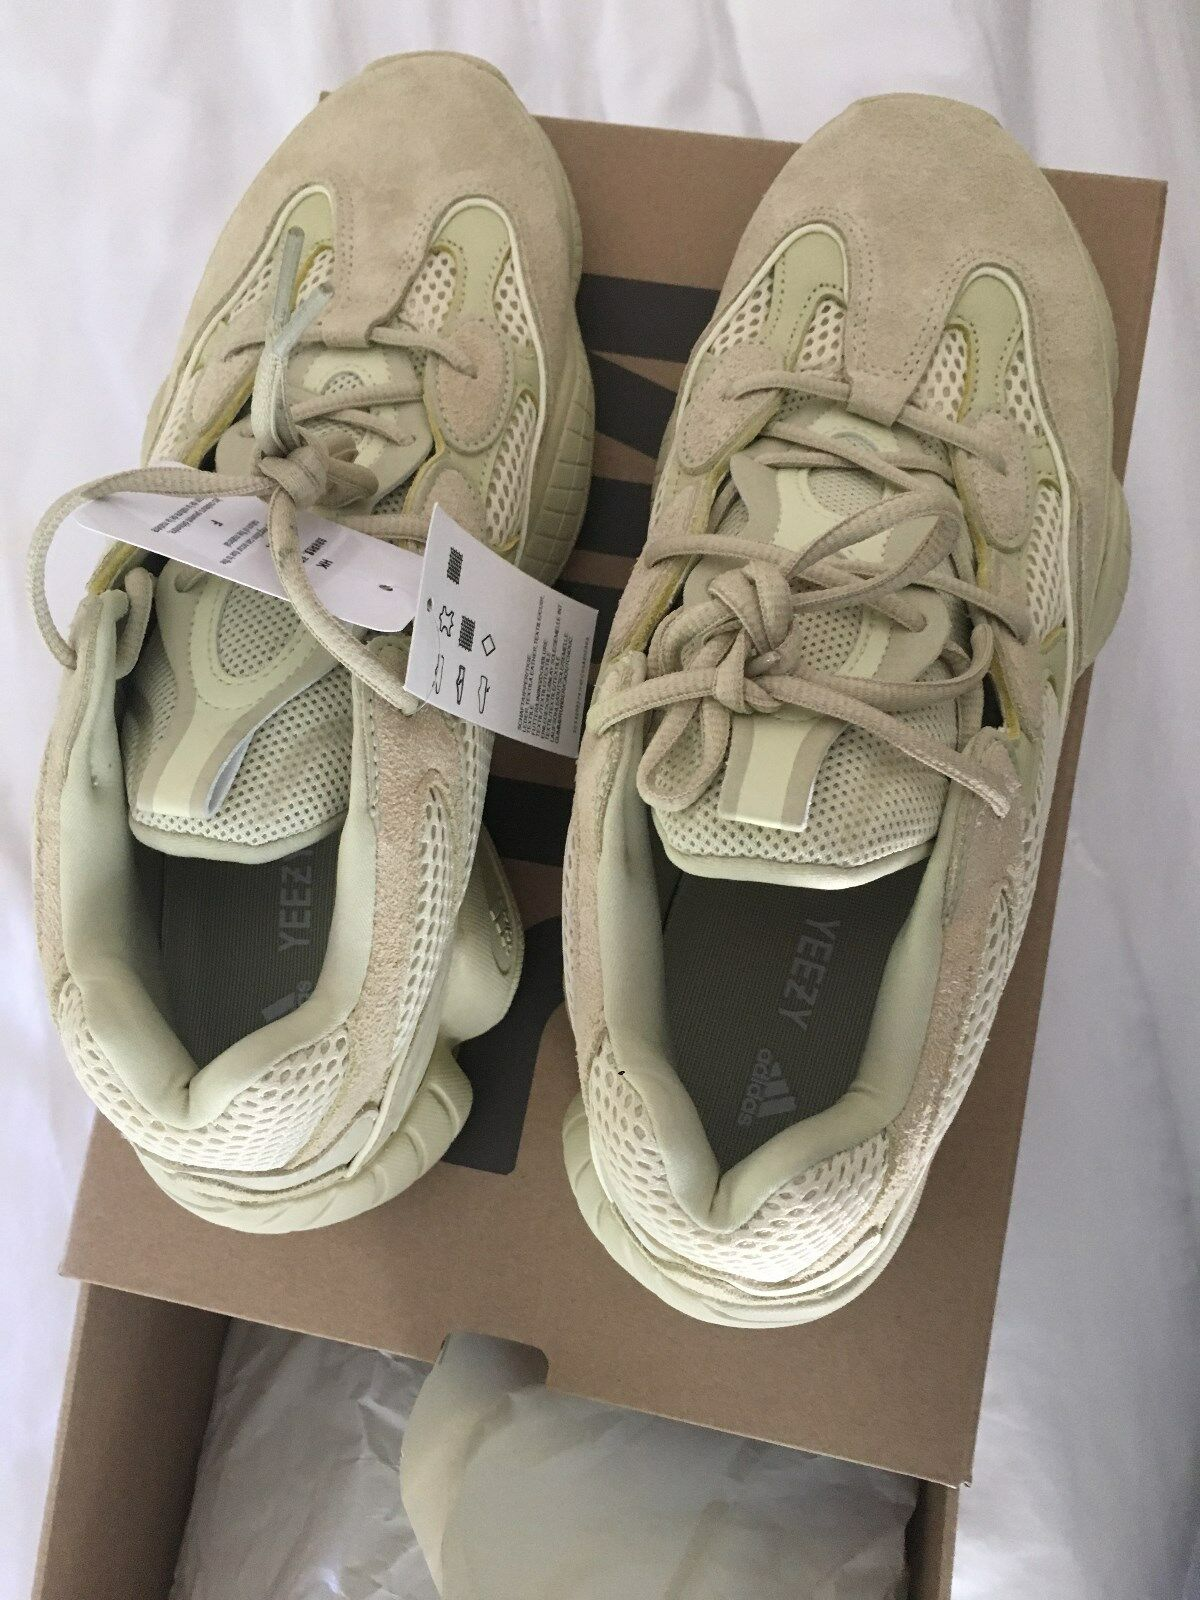 Yeezy Boost 500 Supermoon Yellow - Adidas Size 11.5 - Brand New Deadstock